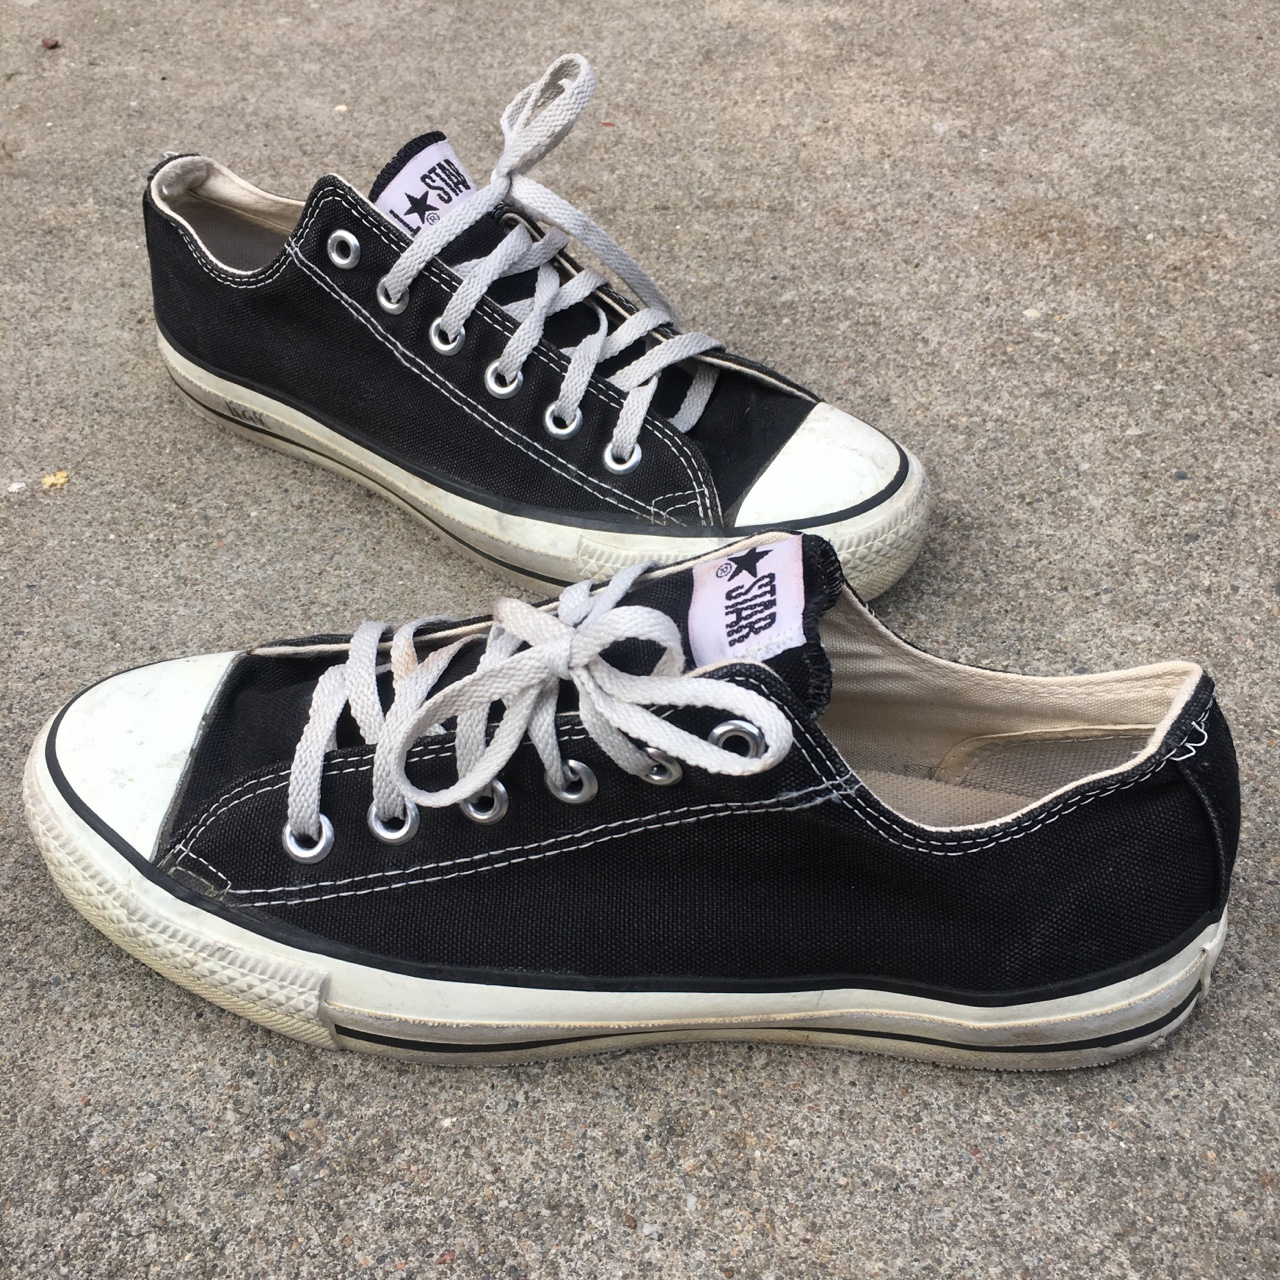 Vintage early 90s Converse Chuck Taylor low black Depop